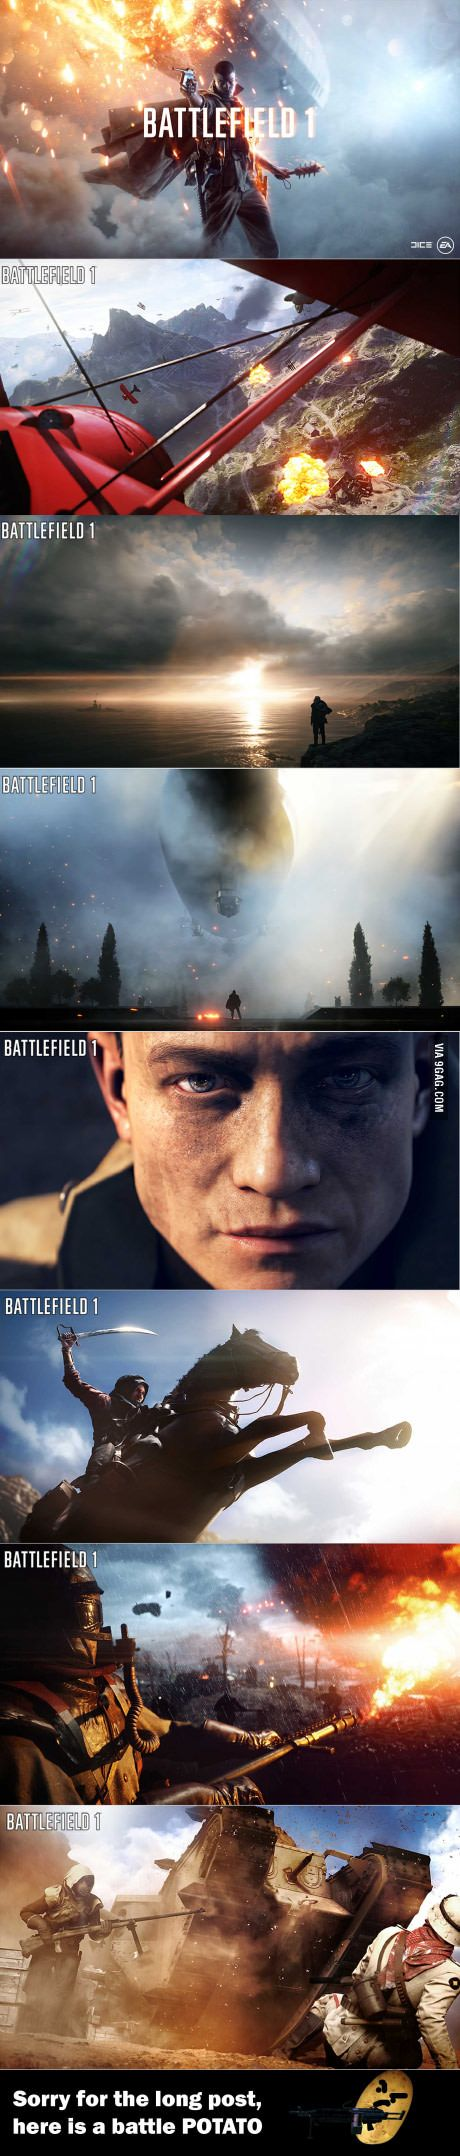 Battlefield 1 is coming guys. And it looks amazing! BTW, Check out this FREE tool to help you with your game -> cheating-games.im...